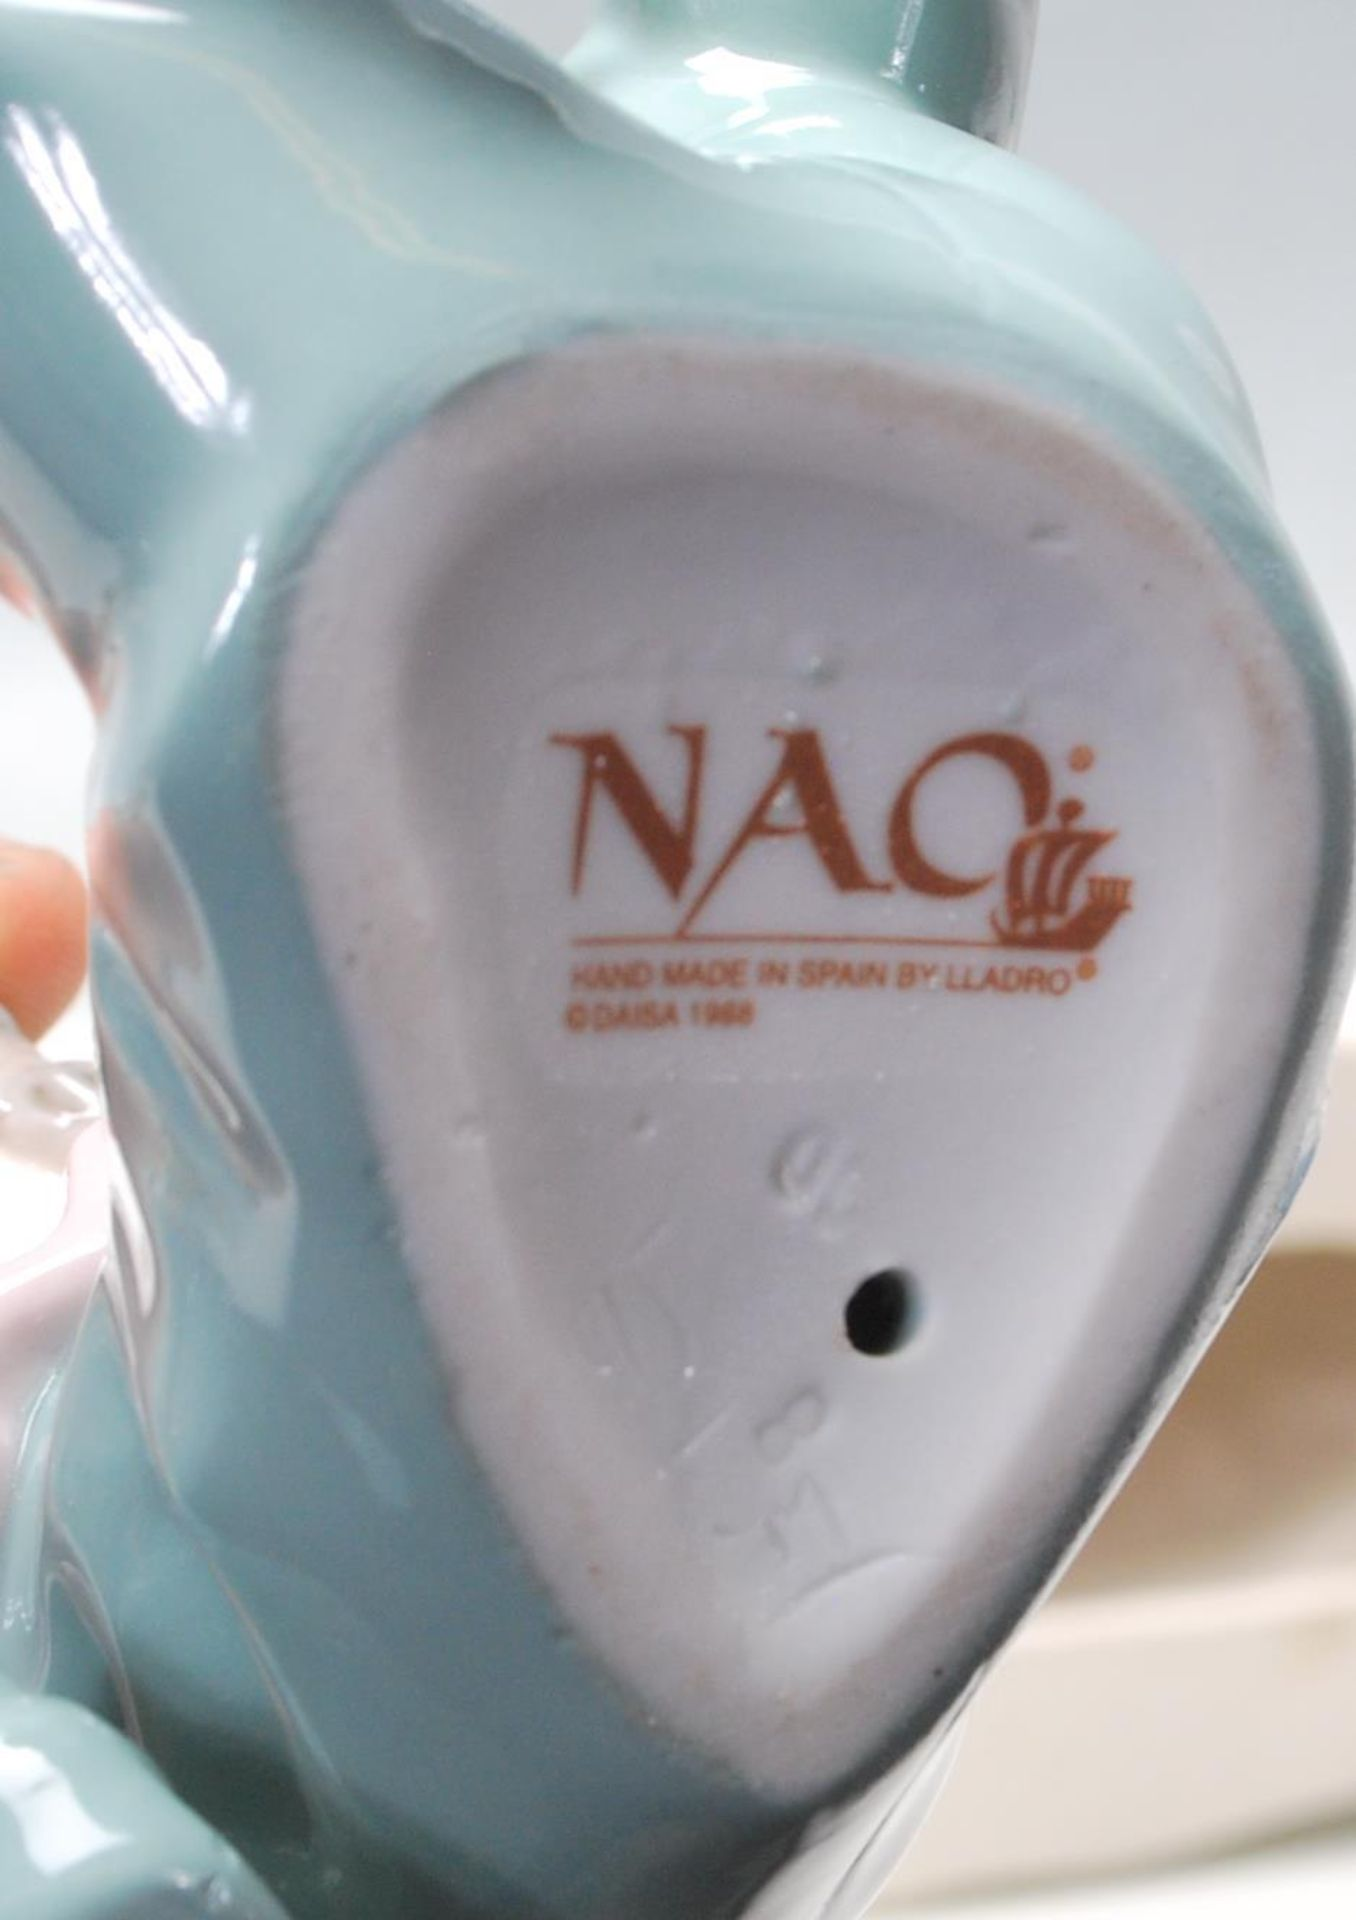 COLELCTION OF LATE 20TH CENTURY CERAMIC PORCELAIN NAO FIGURINES - Image 6 of 8